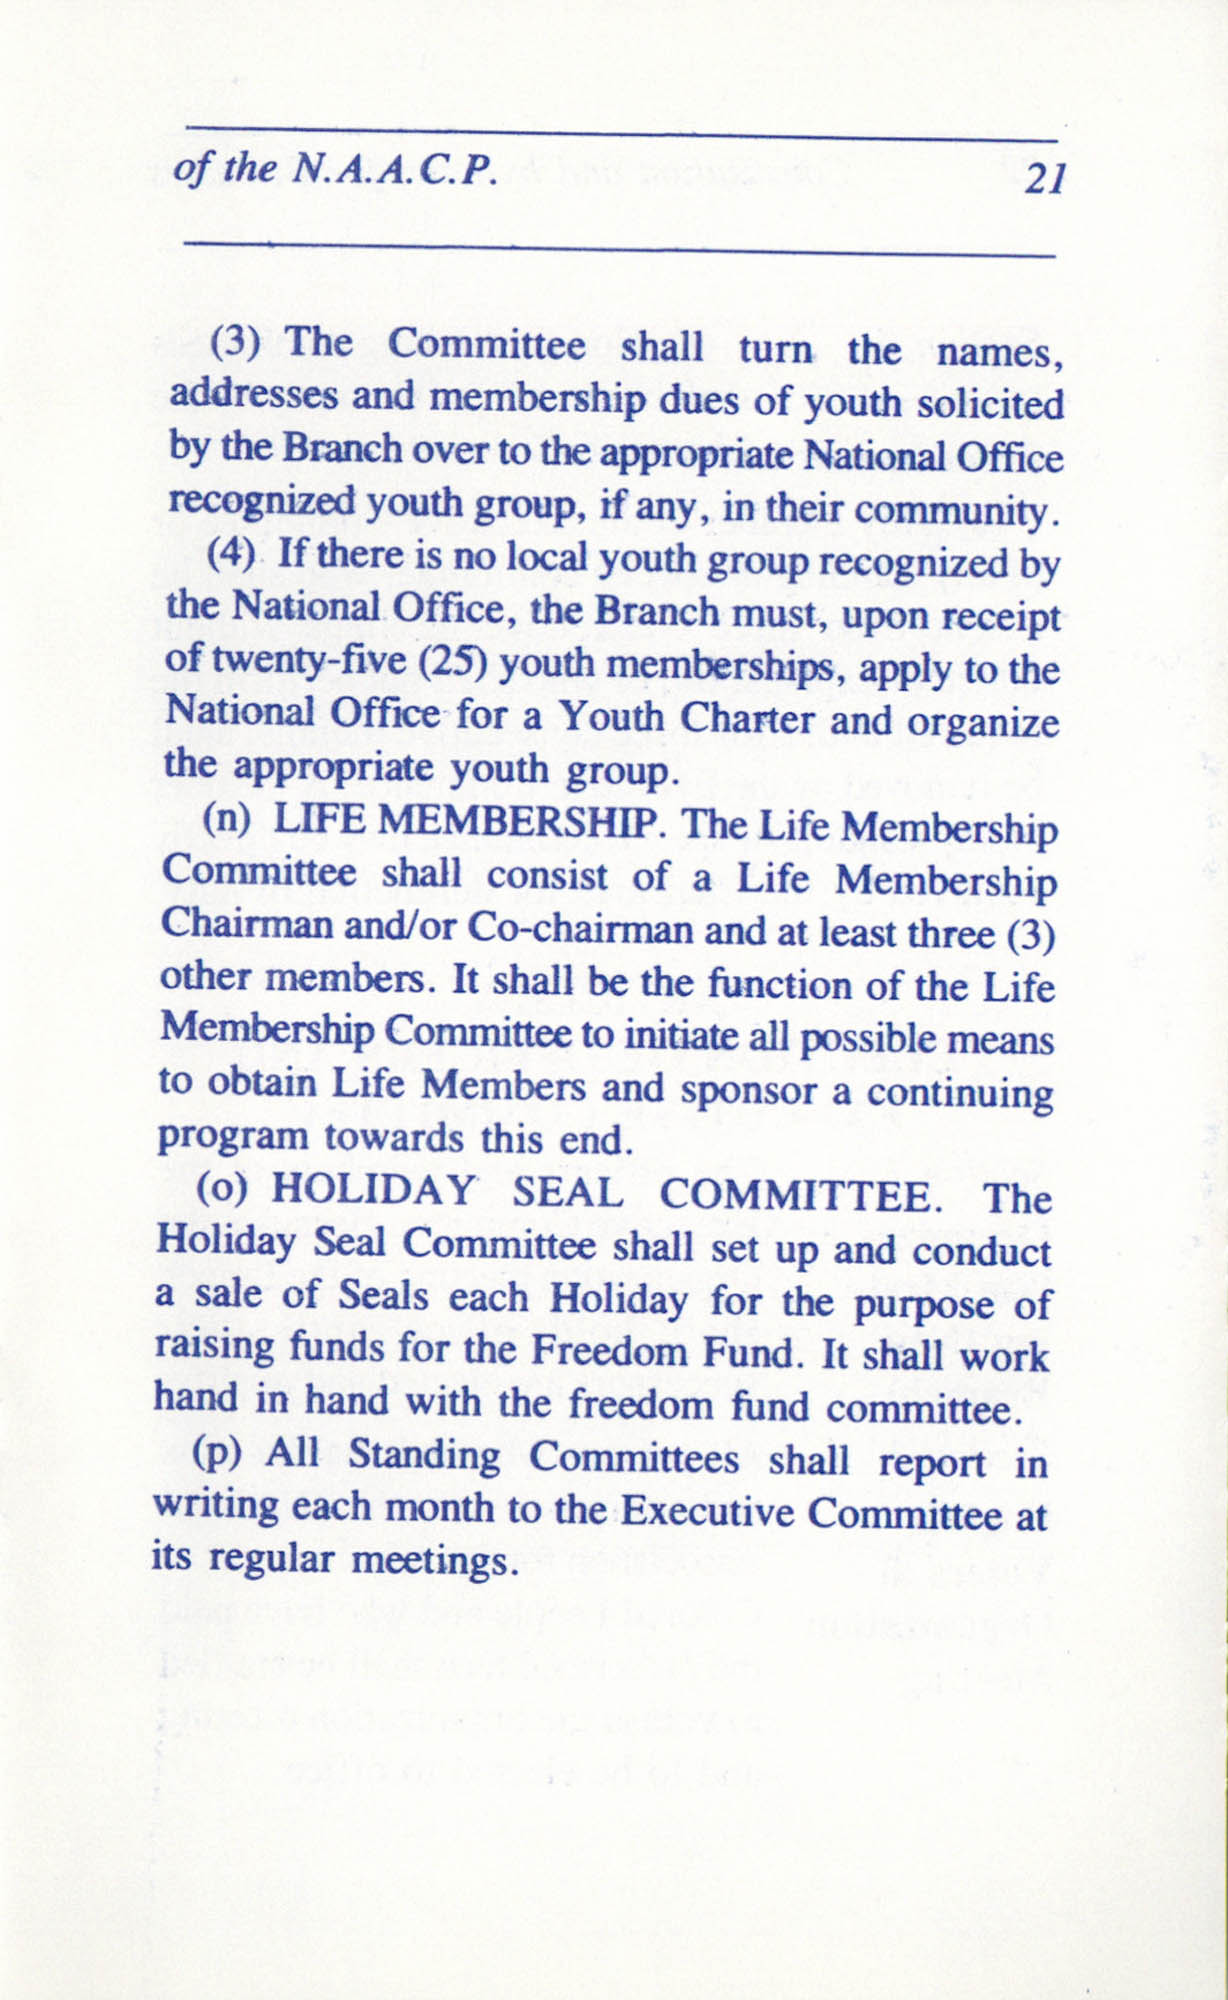 Constitution and By-Laws for Branches of the NAACP, June 1993, Page 21